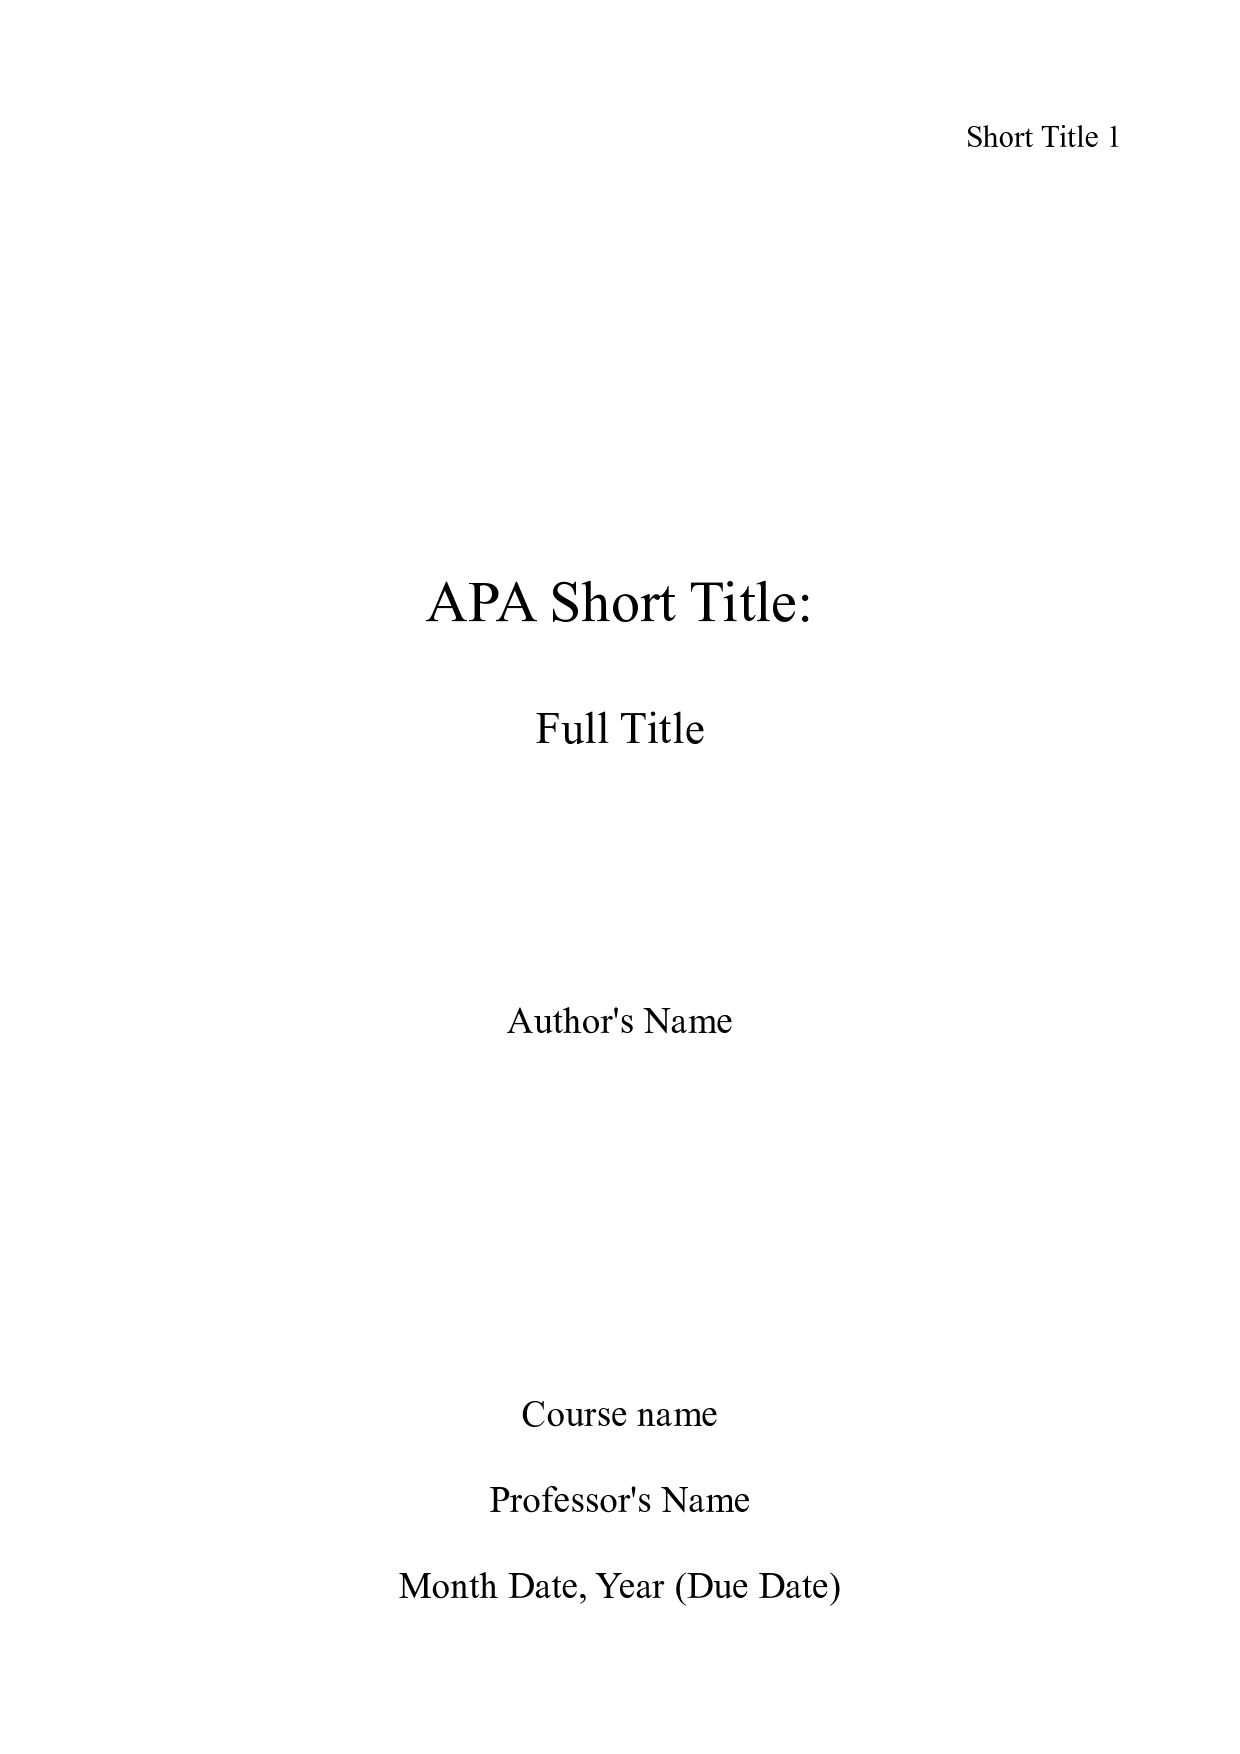 ordinaire picture of of an apa title page | APA Essay Help with Style and APA College  Essay Format